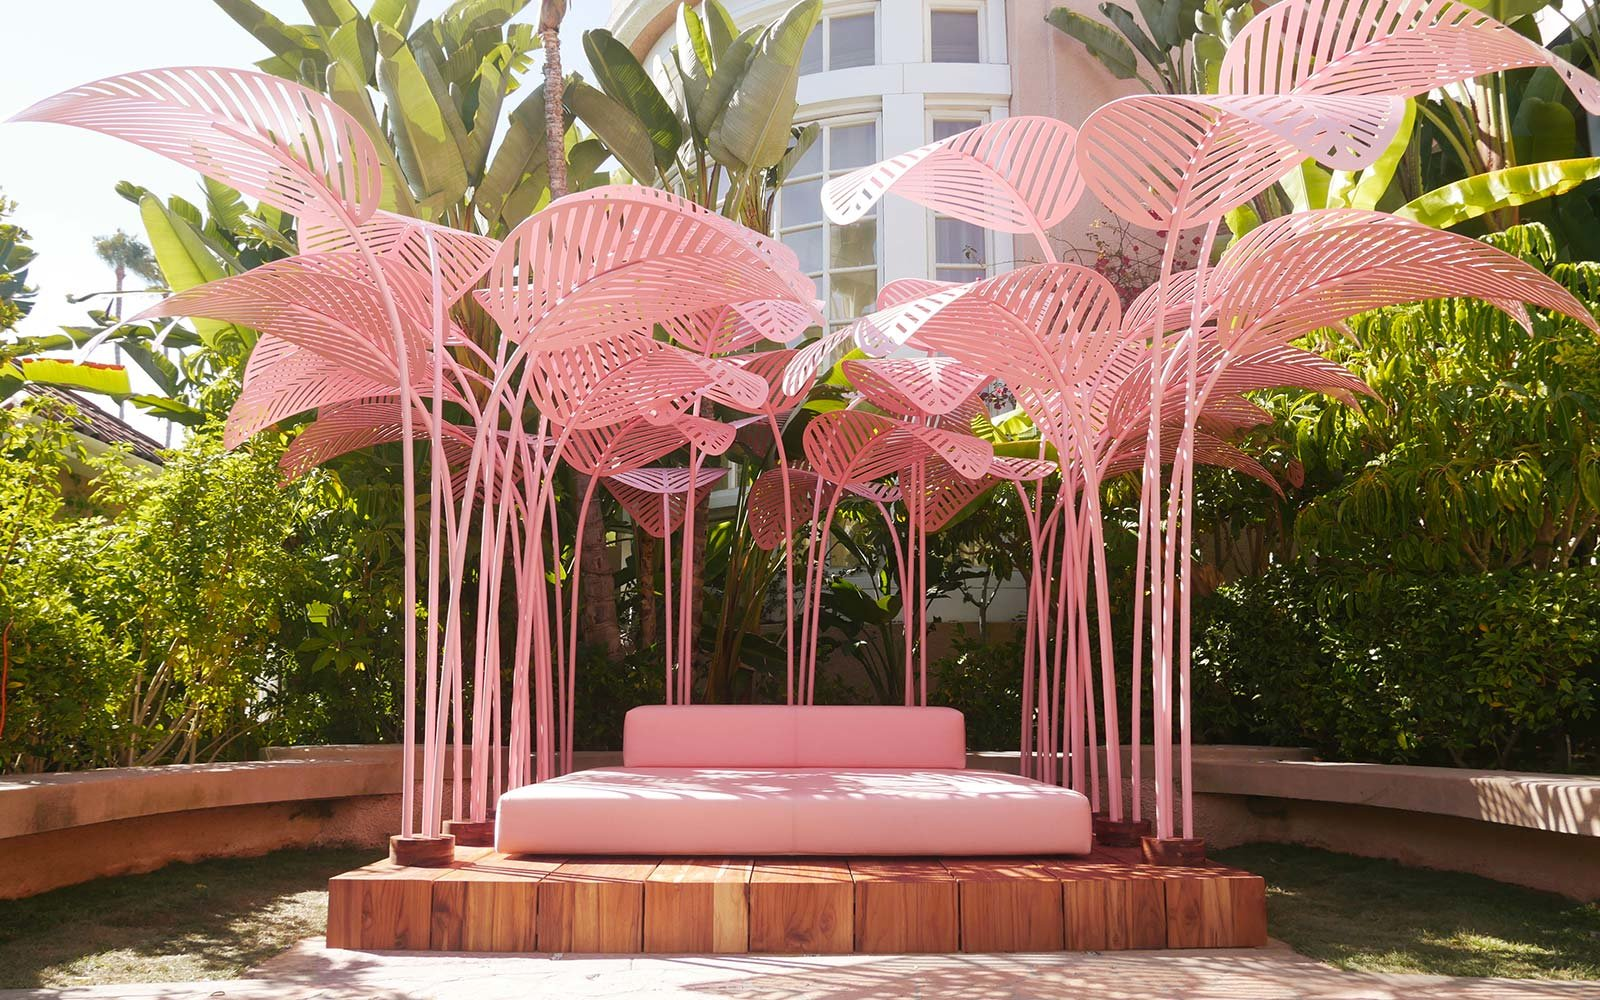 Le Refuge Millennial Pink Art Installation Marc Ange Beverly Hills Hotel Los Angeles California Instagram